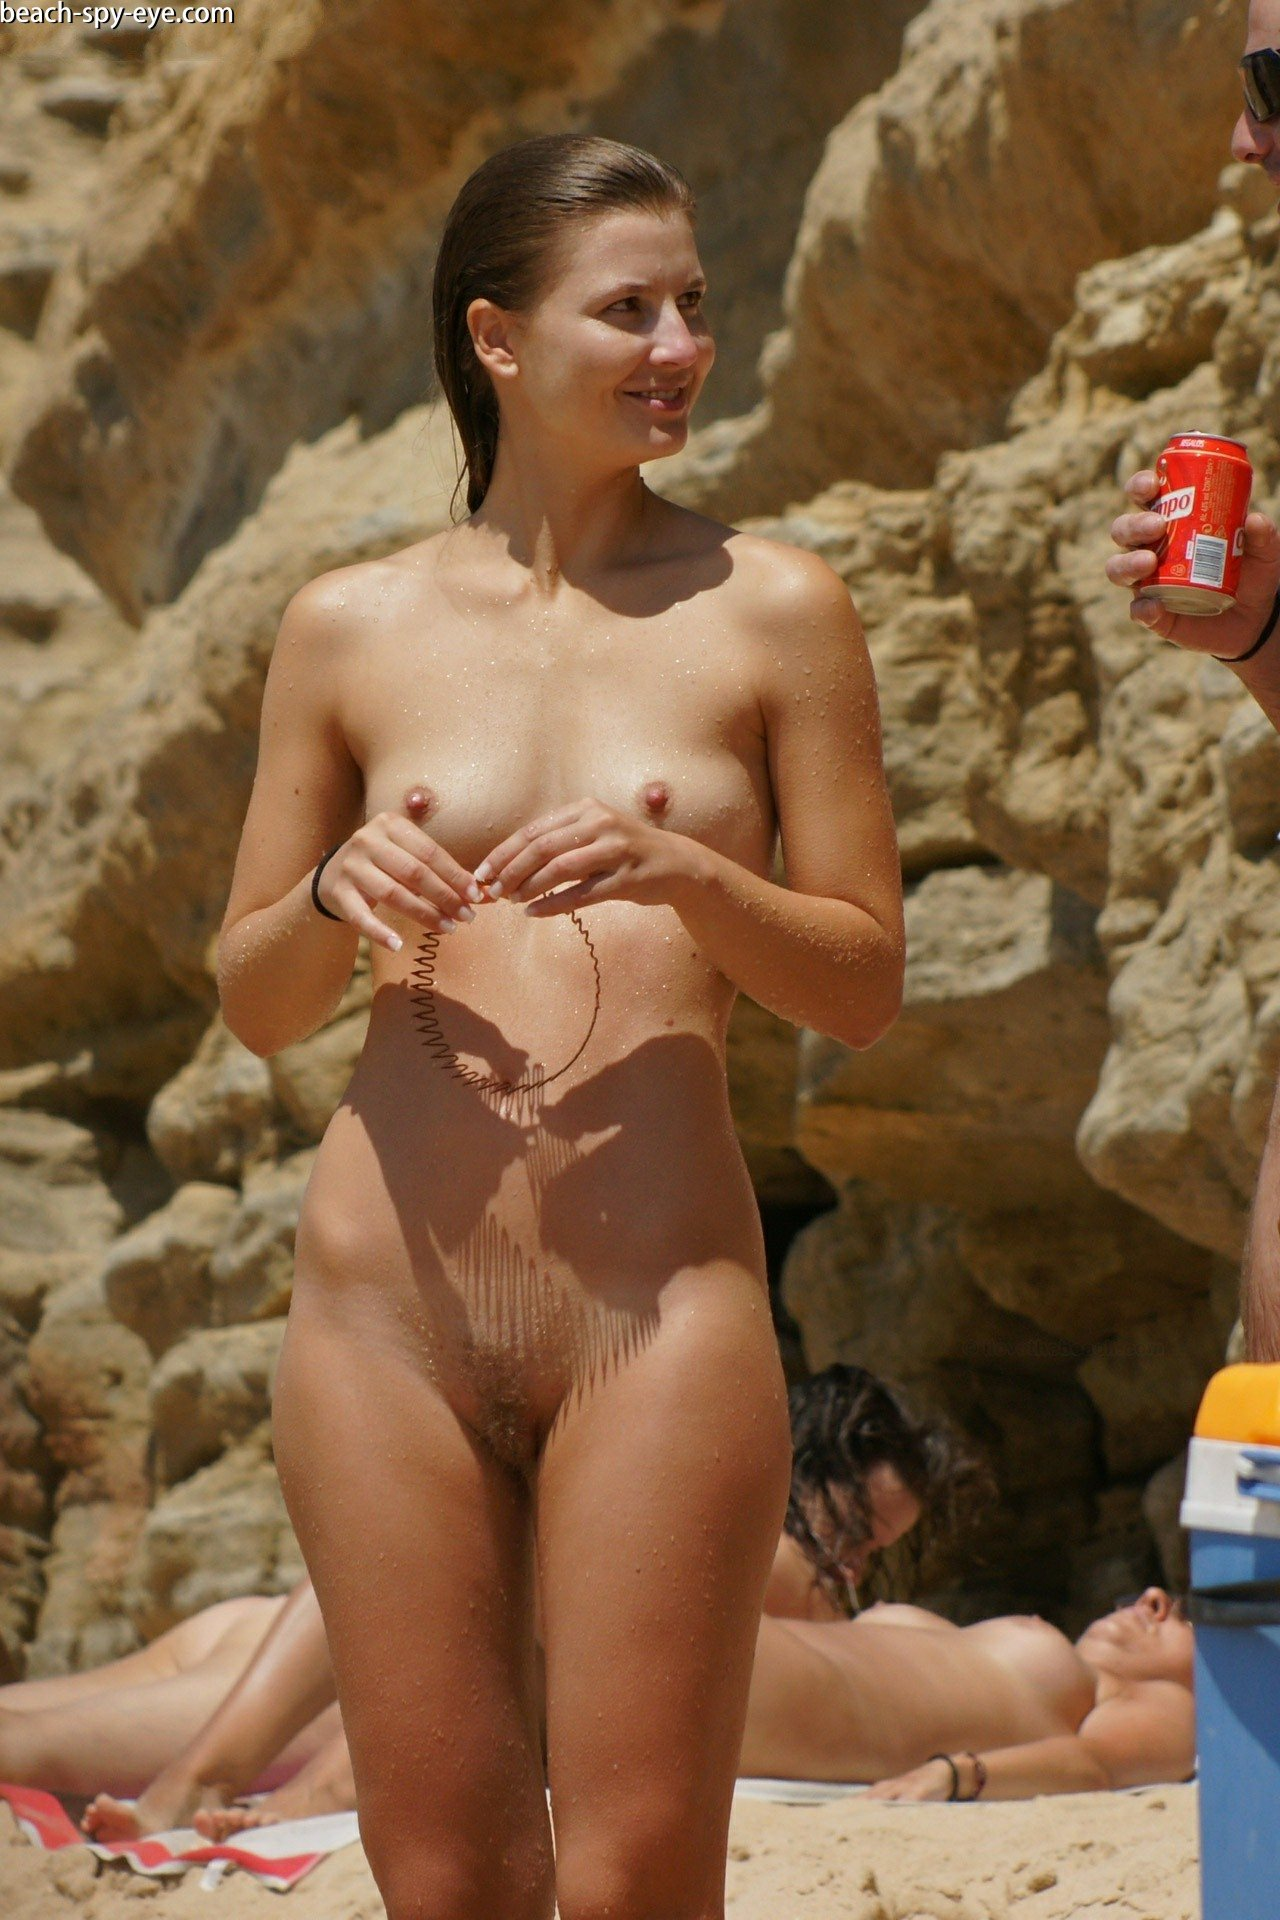 https://pbs-0.adult-empire.com/39/3926/beach_nude_women-6135/1-beach_nude_women.jpg